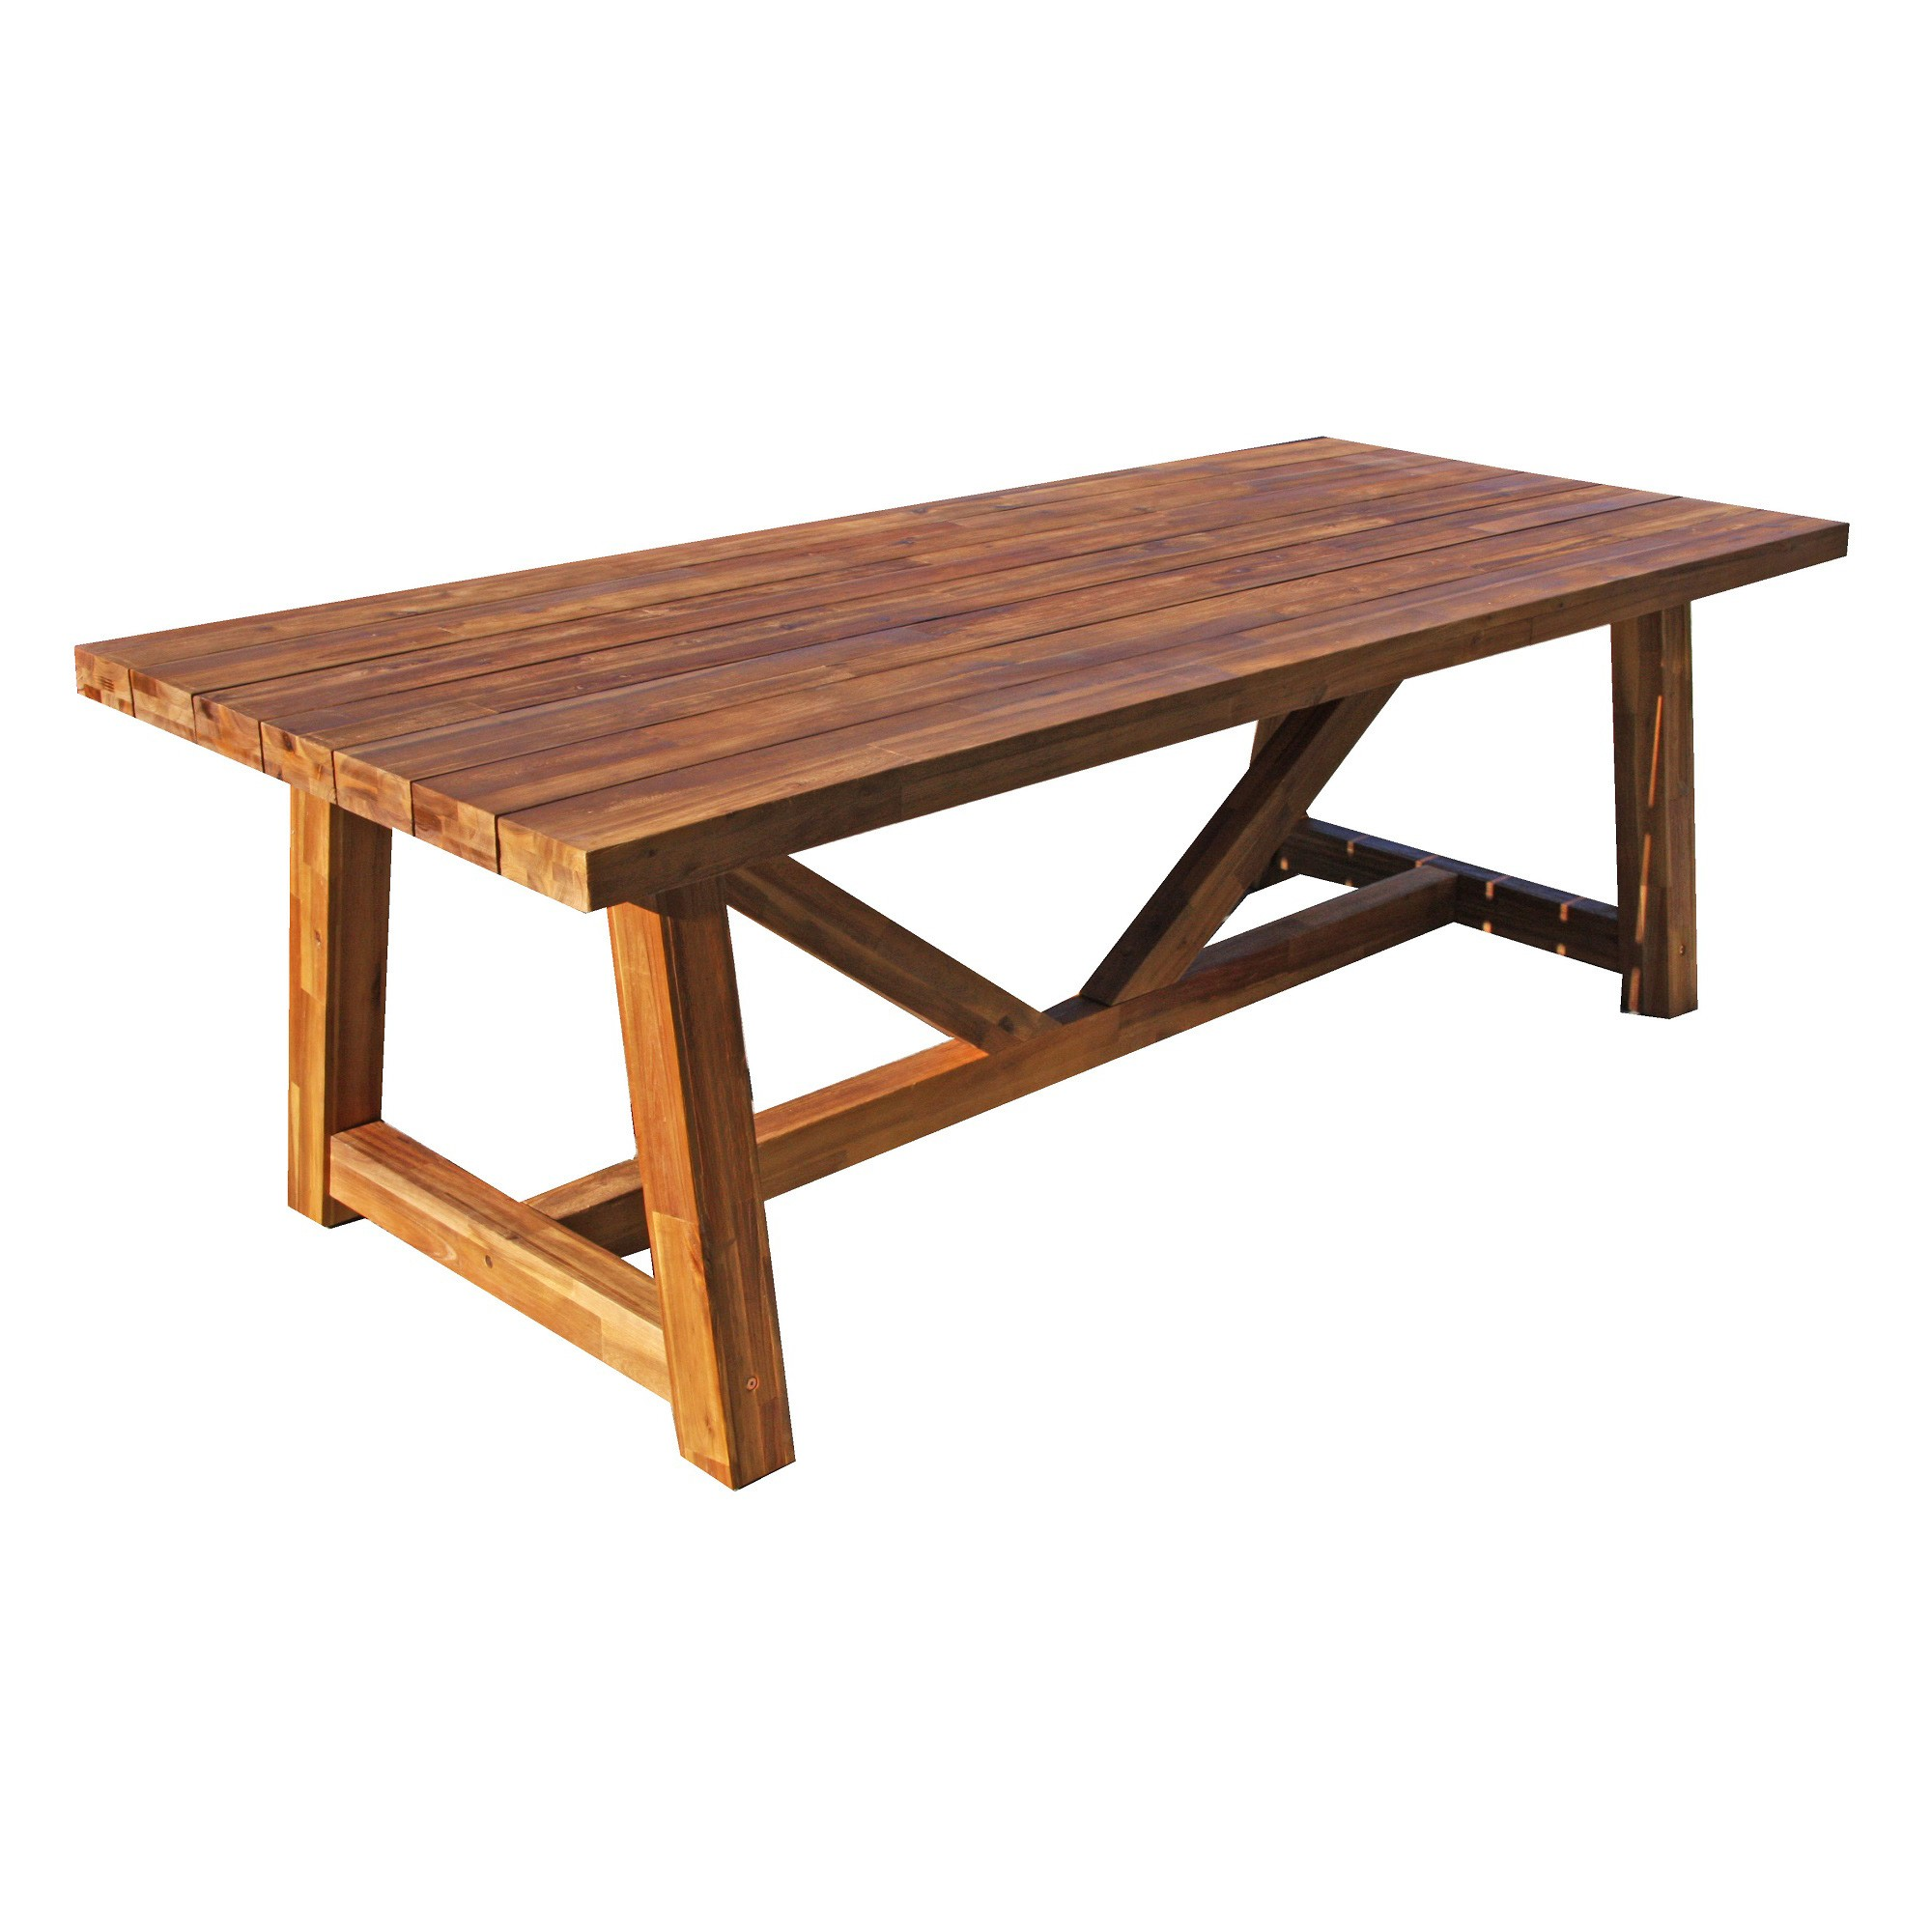 Antigua Acacia Timber Trestle Dining Table, 240cm